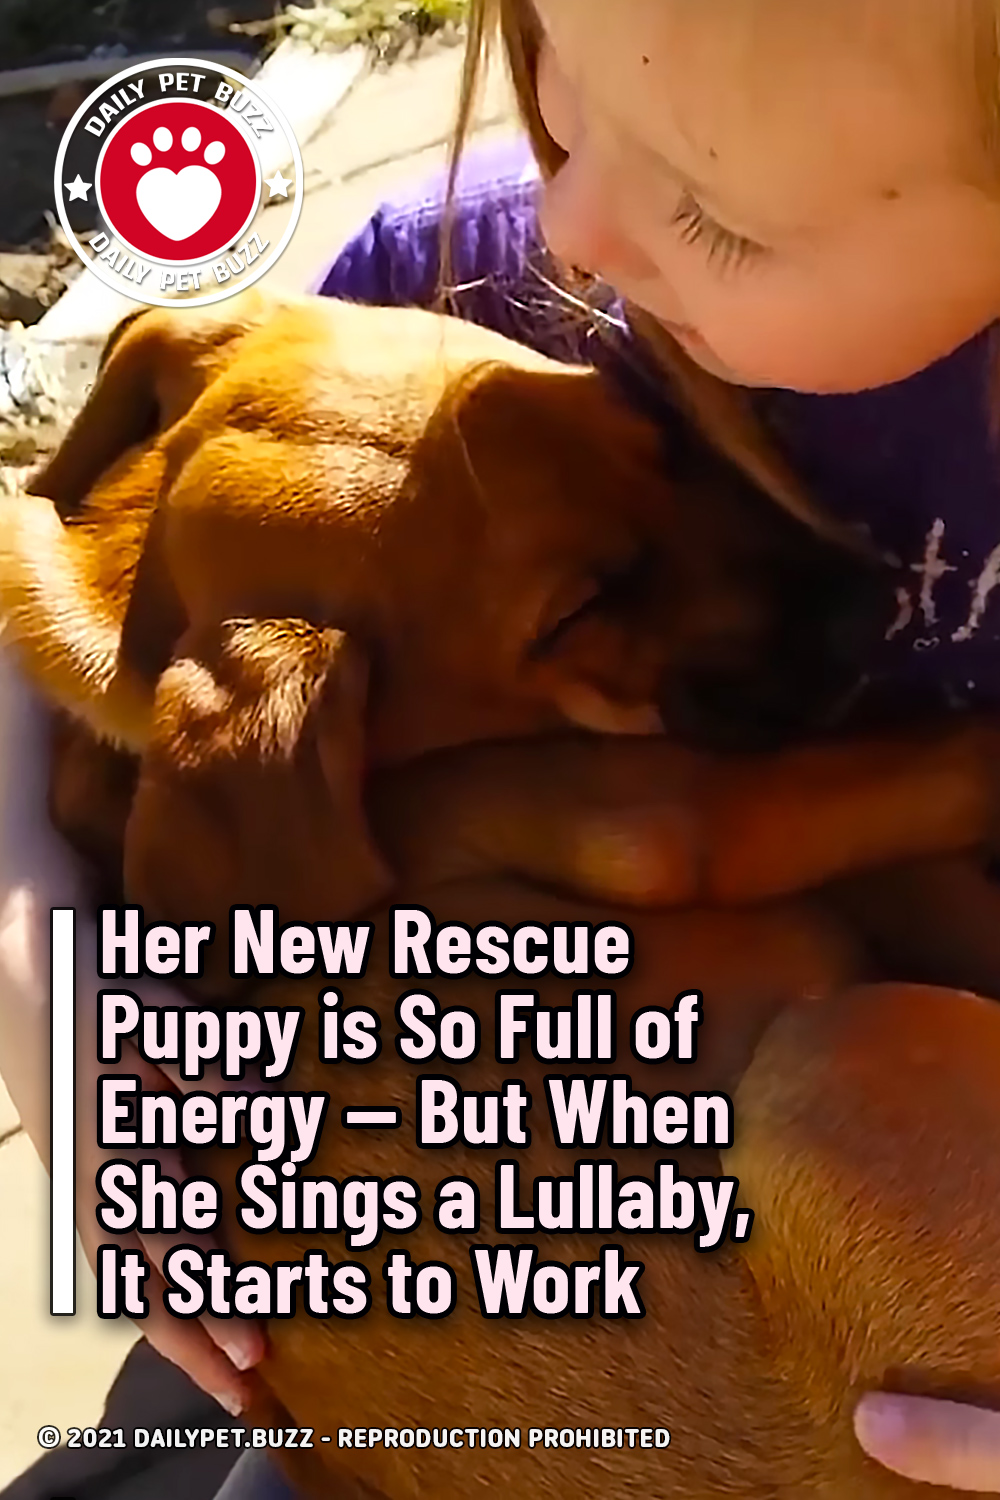 Her New Rescue Puppy is So Full of Energy -- But When She Sings a Lullaby, It Starts to Work